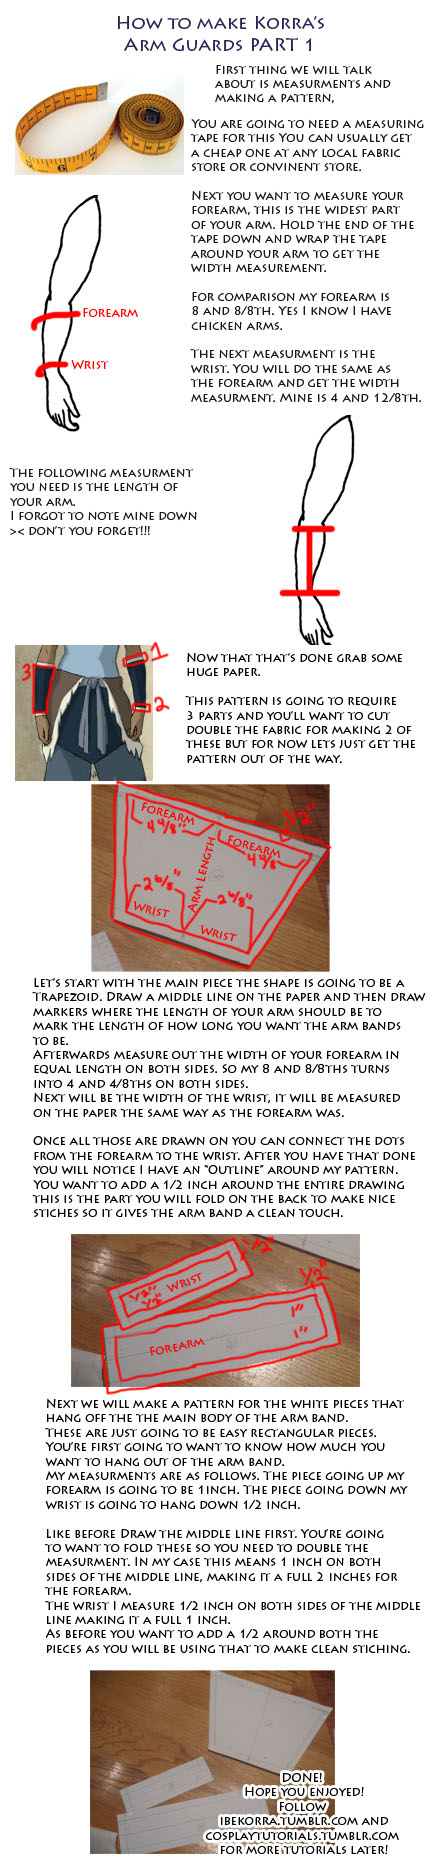 Korra Arm Band Part 1 Tutorial by Naiagu